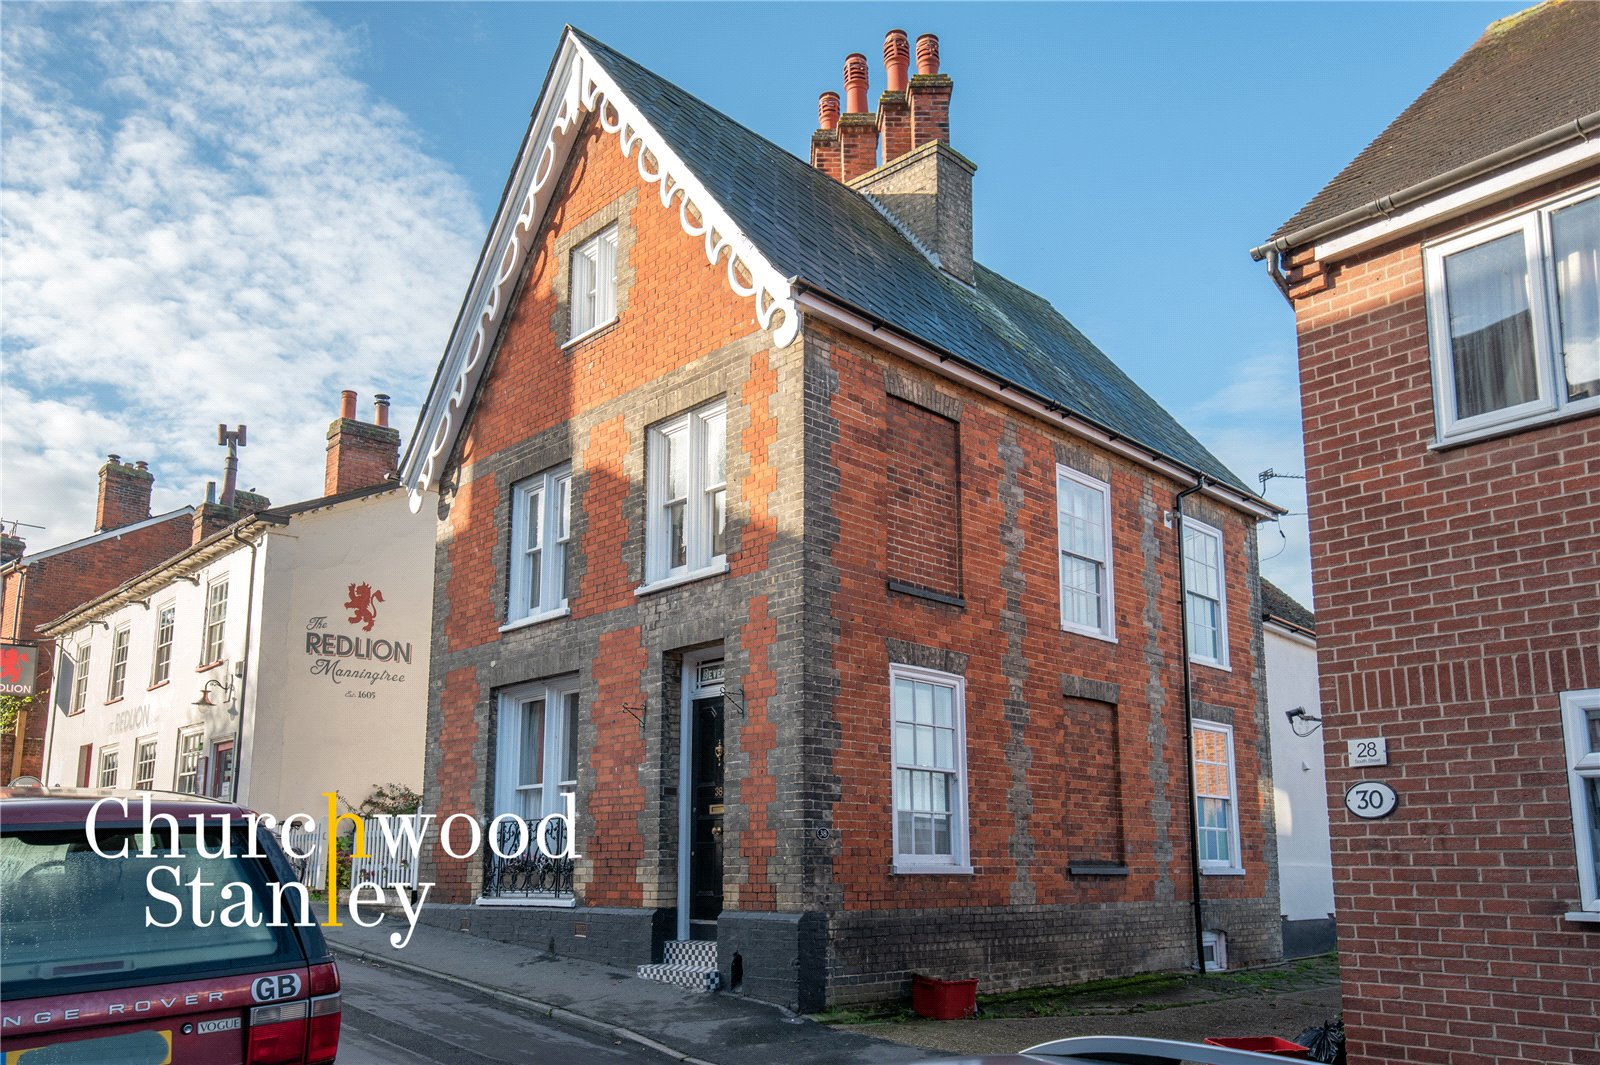 4 bed house for sale in South Street, Manningtree, Essex, CO11